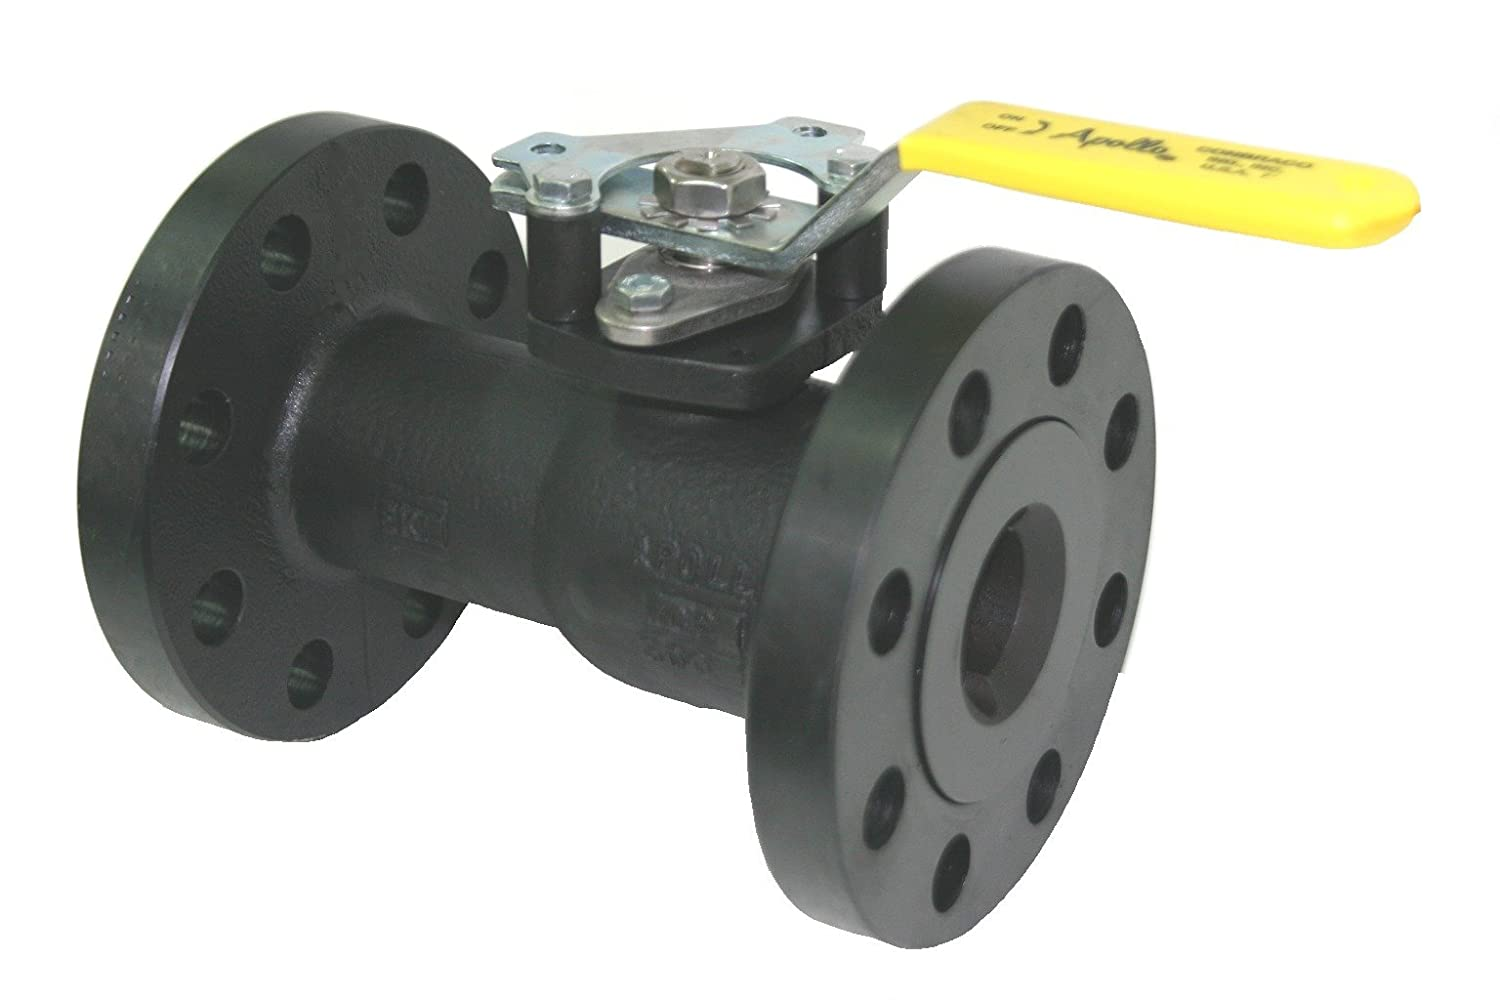 Standard Port Apollo 88A-700 Series Carbon Steel Ball Valve Handle Adapter 4 Flanged 4 Flanged Conbraco Industries 88A70A01 Inline Class 300